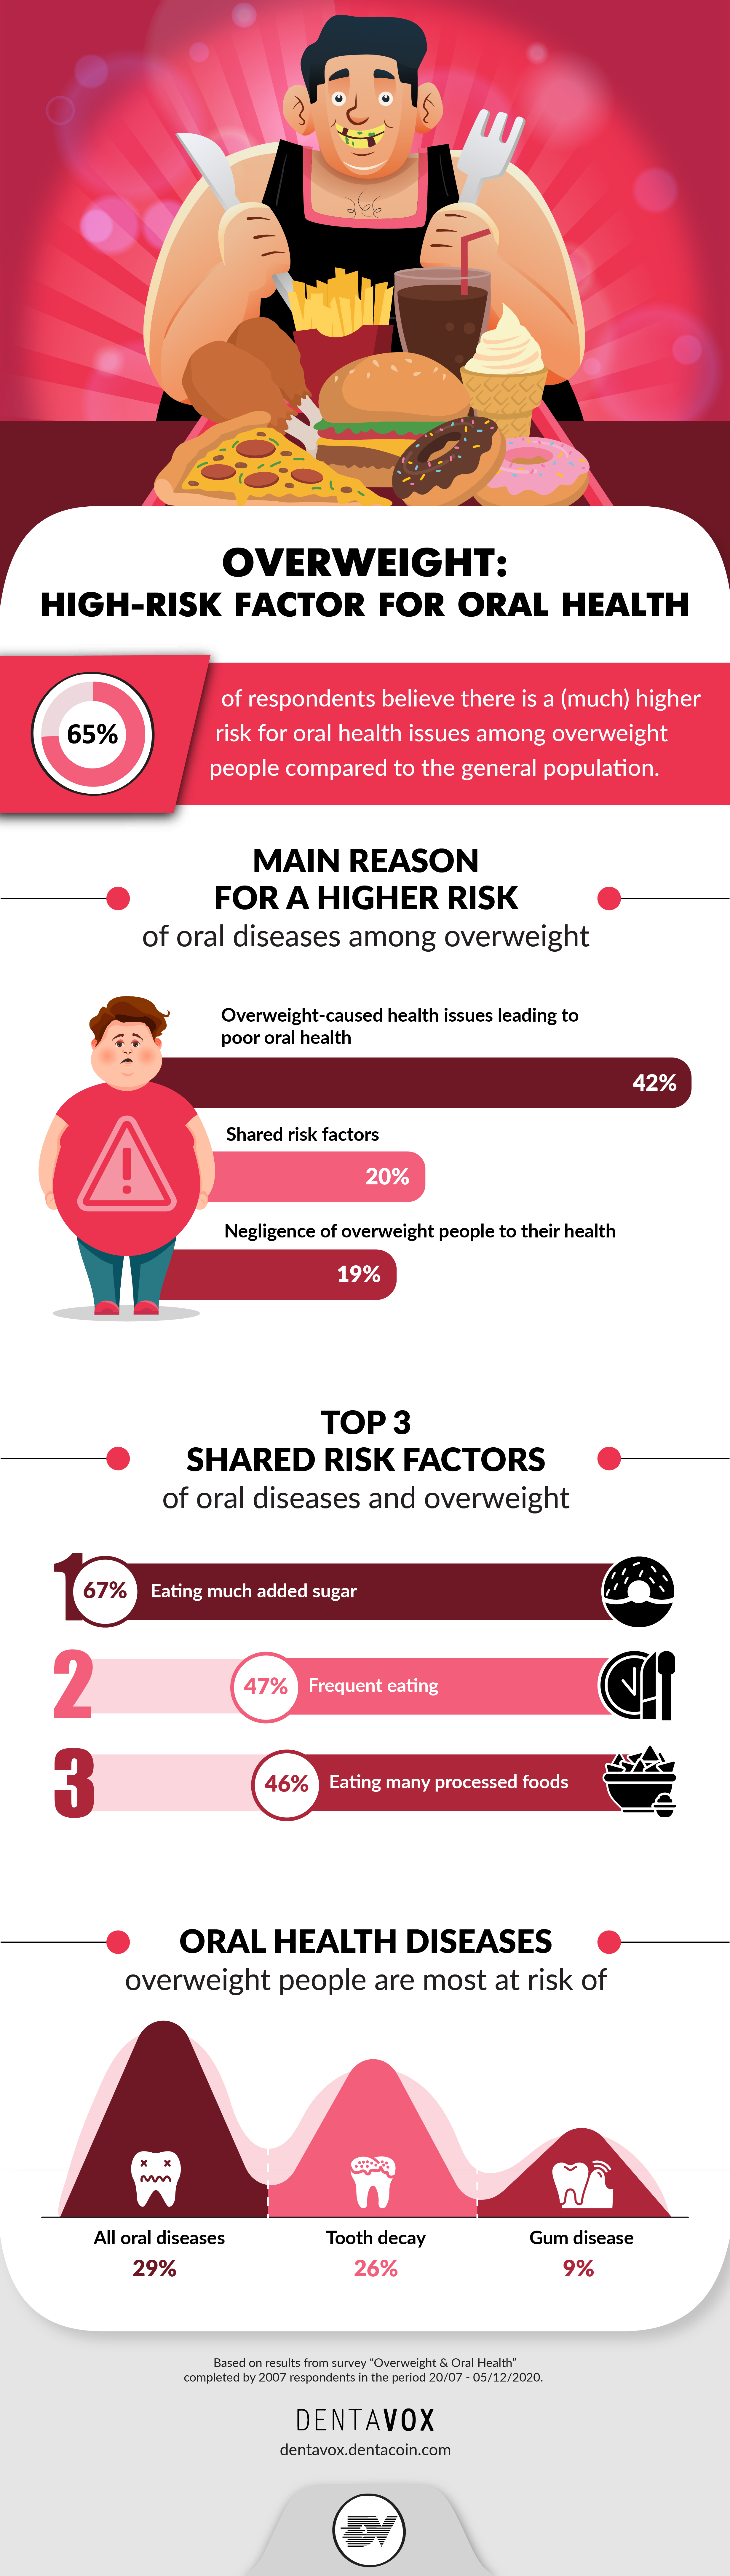 overweight oral health risks